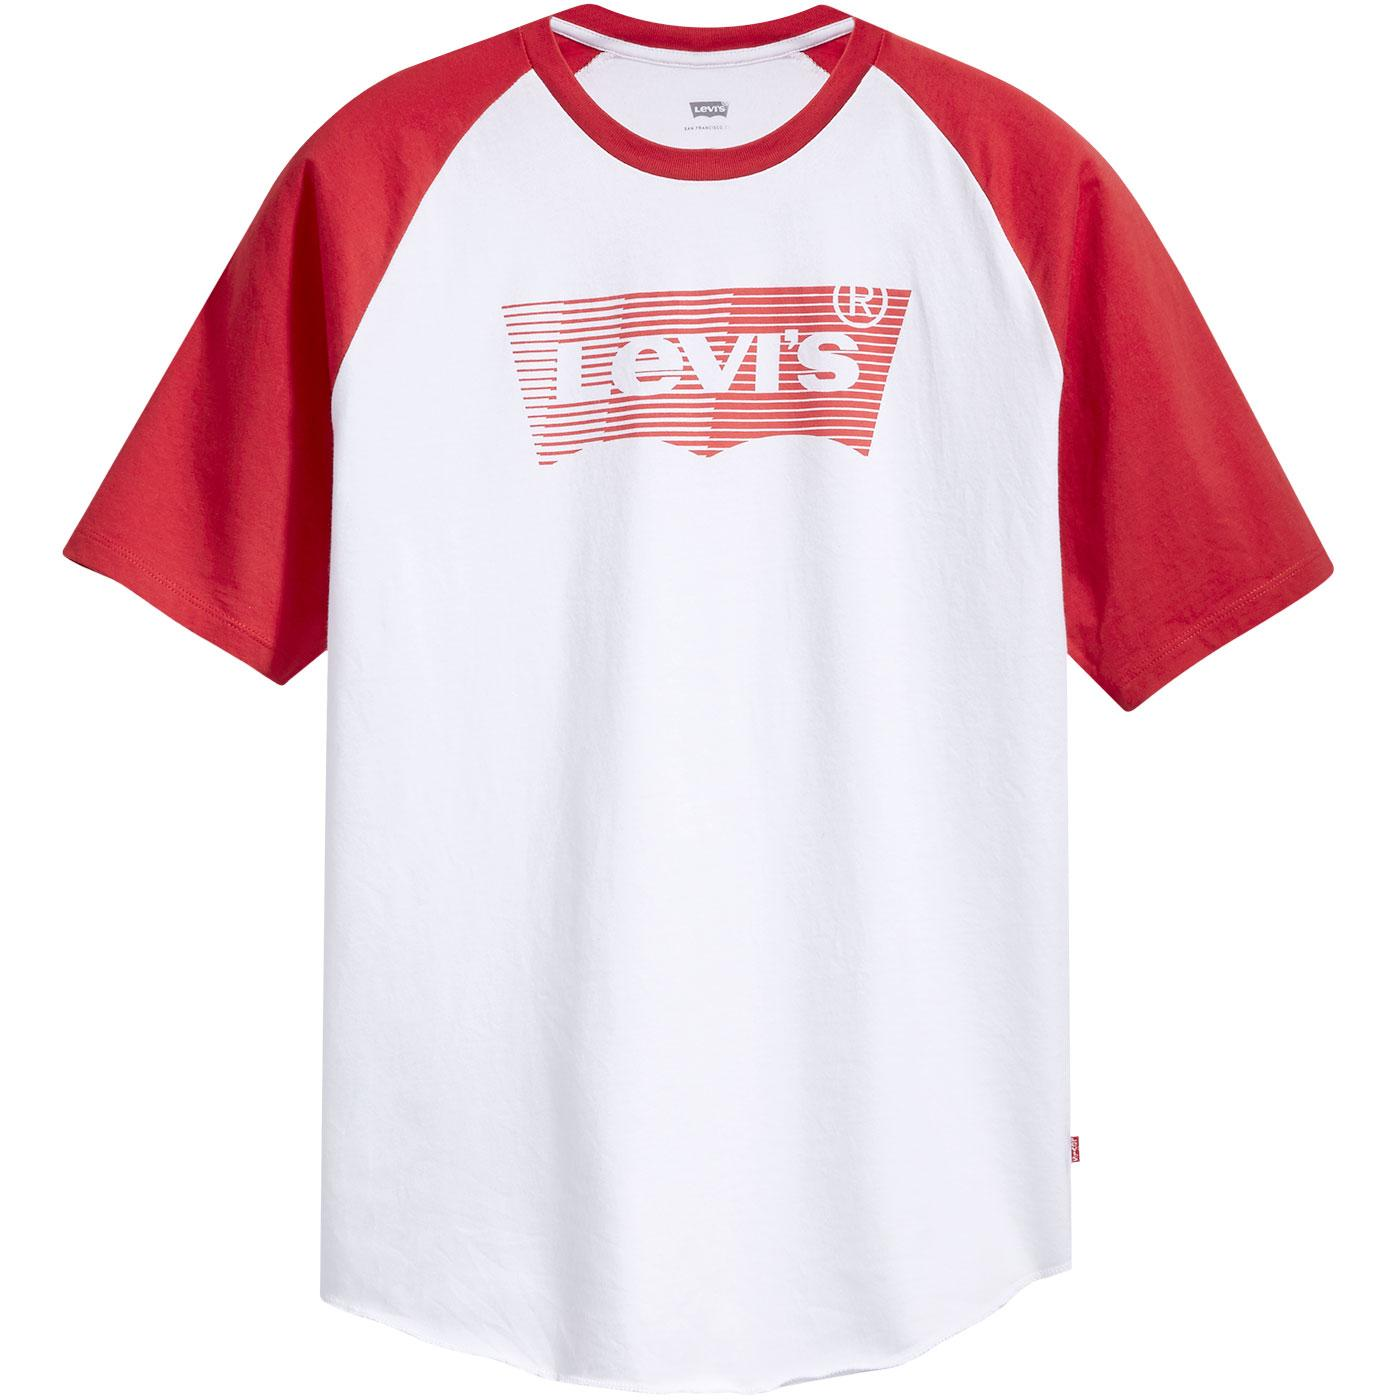 LEVI'S Mens Retro 60s Baseball T-Shirt White/Red